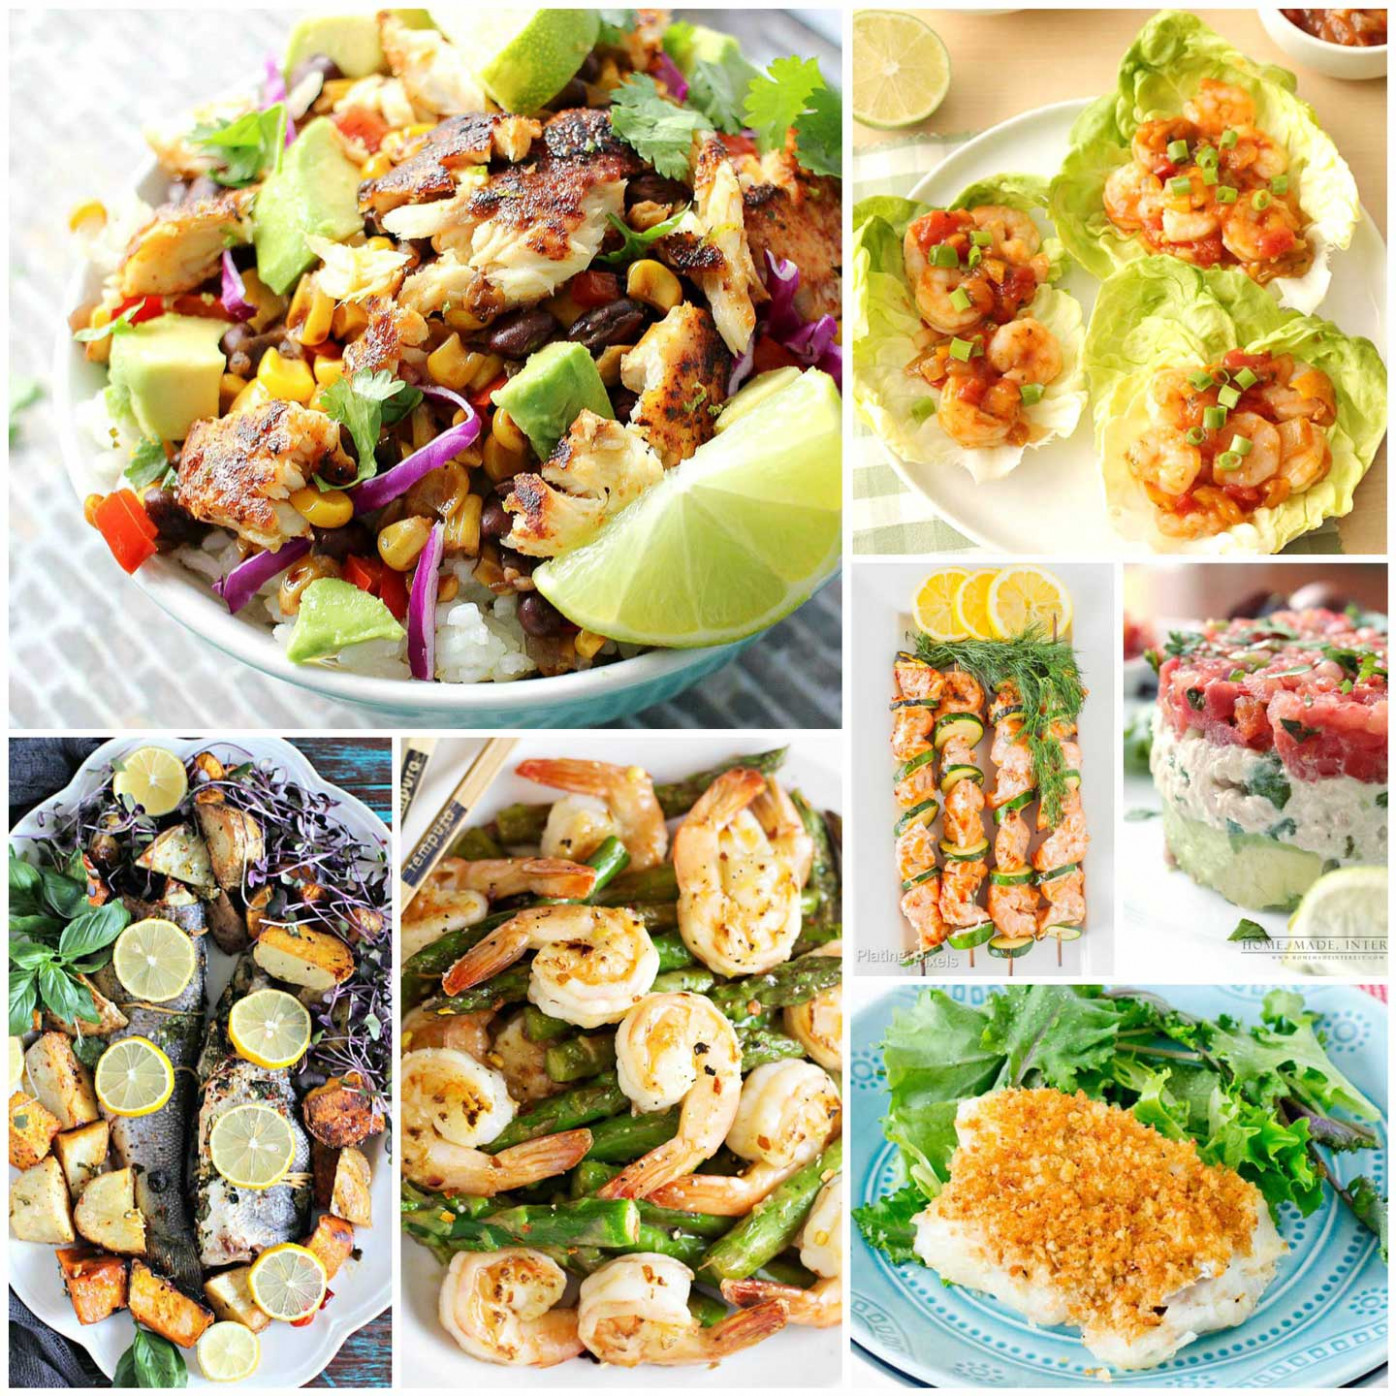 11 All-Time Best Healthy, Easy Seafood and Fish Recipes - quick recipes dinner for two